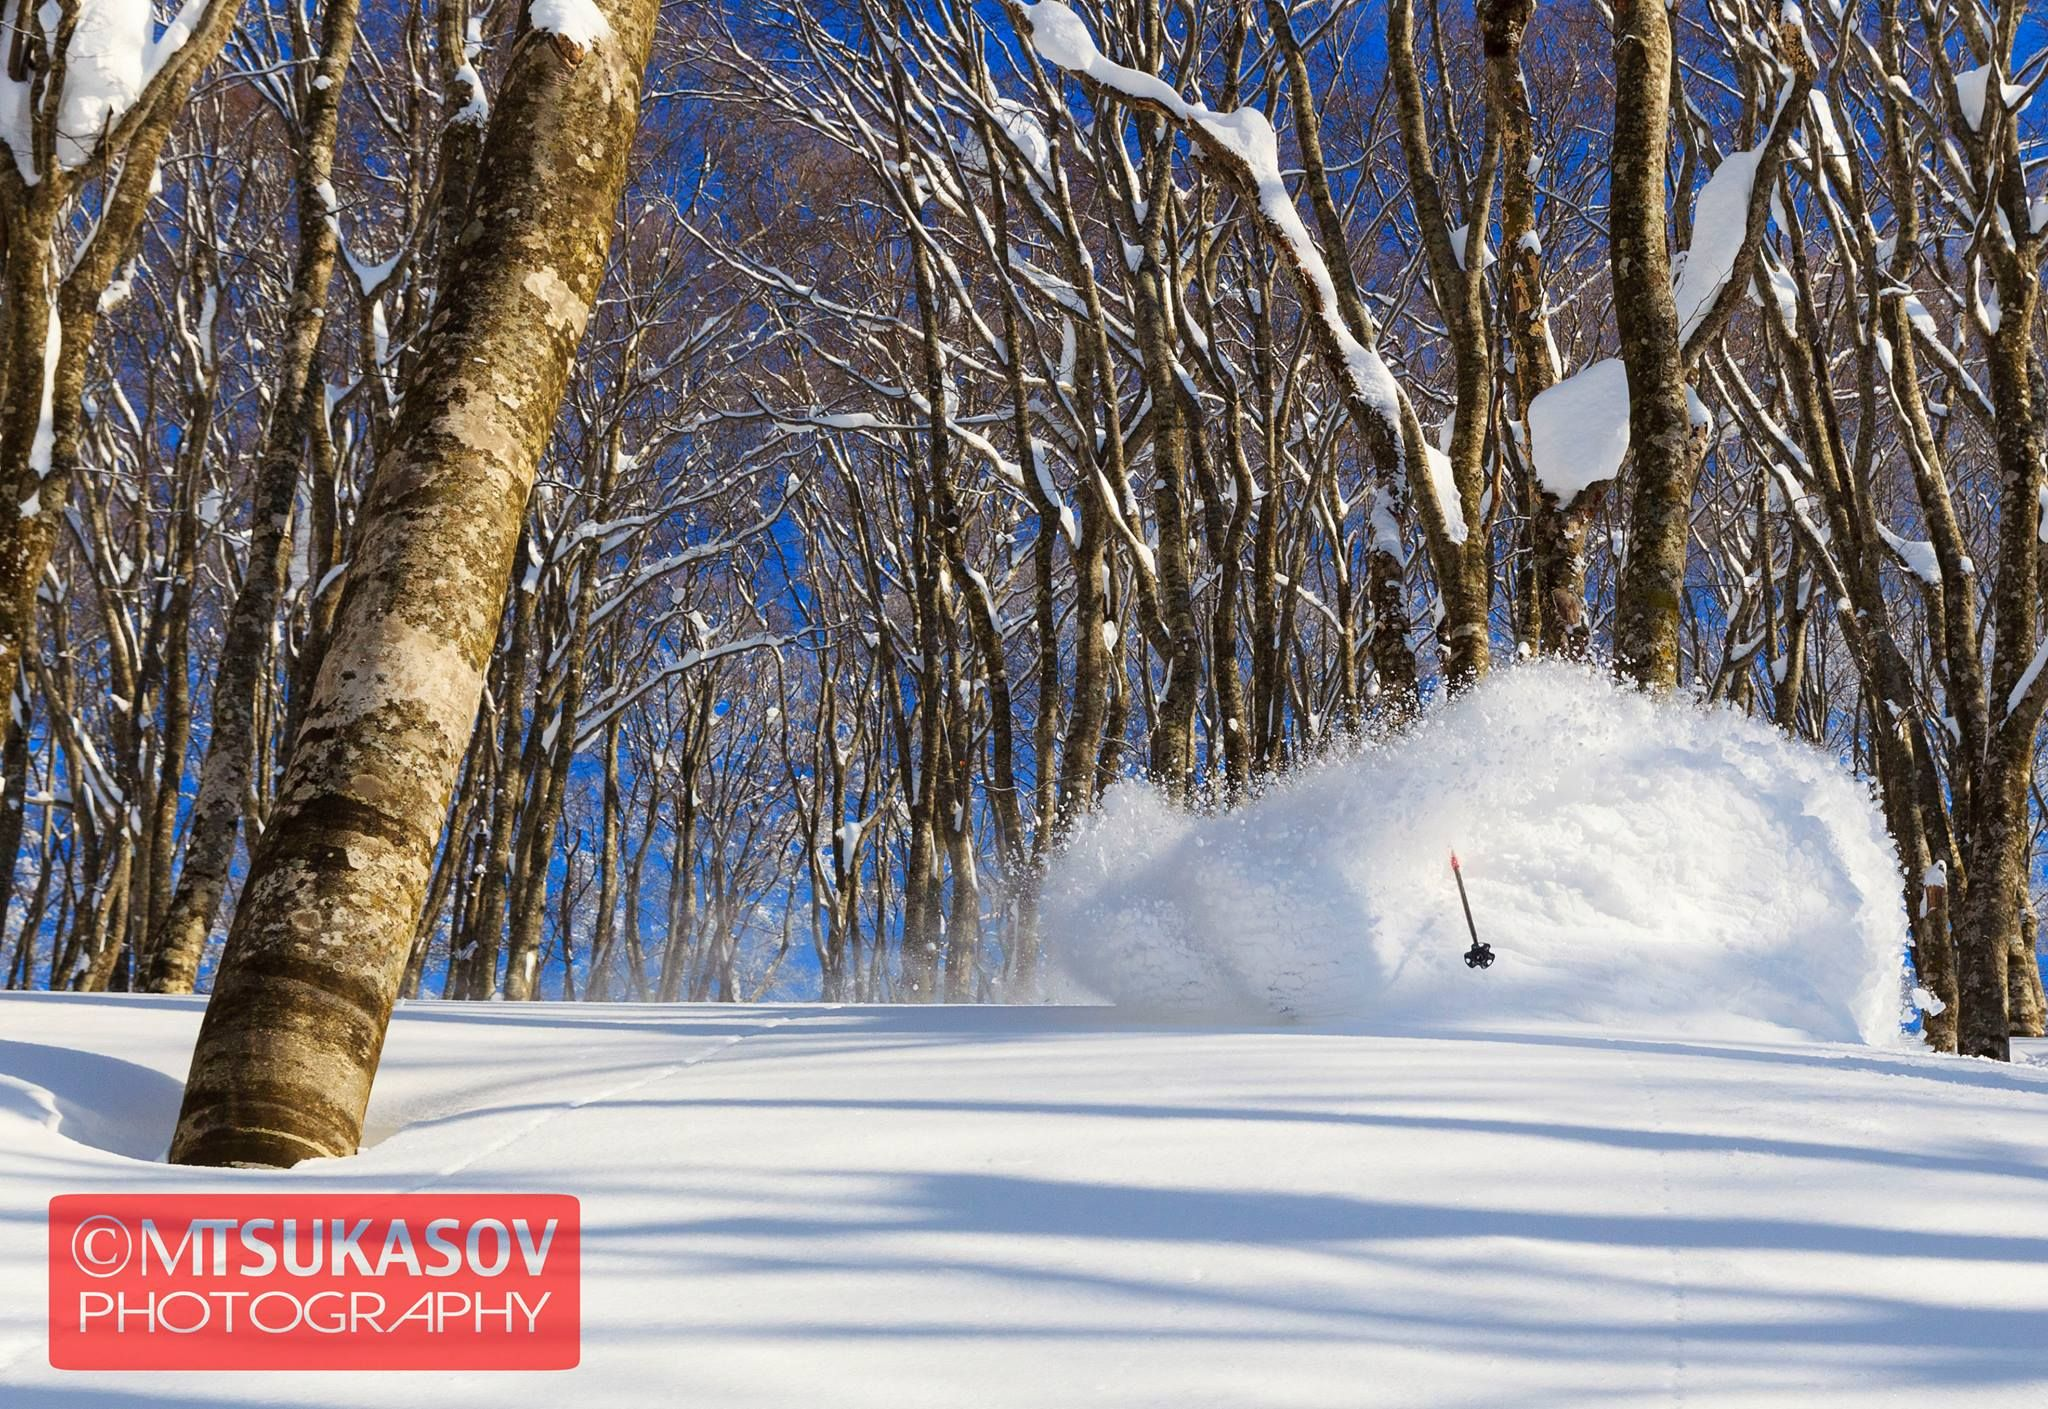 We have been offering Hakuba Backcountry Tours for more than 10 years, as well as running Avalanche Skills Training & Off-Piste Tours. Snow is our business.